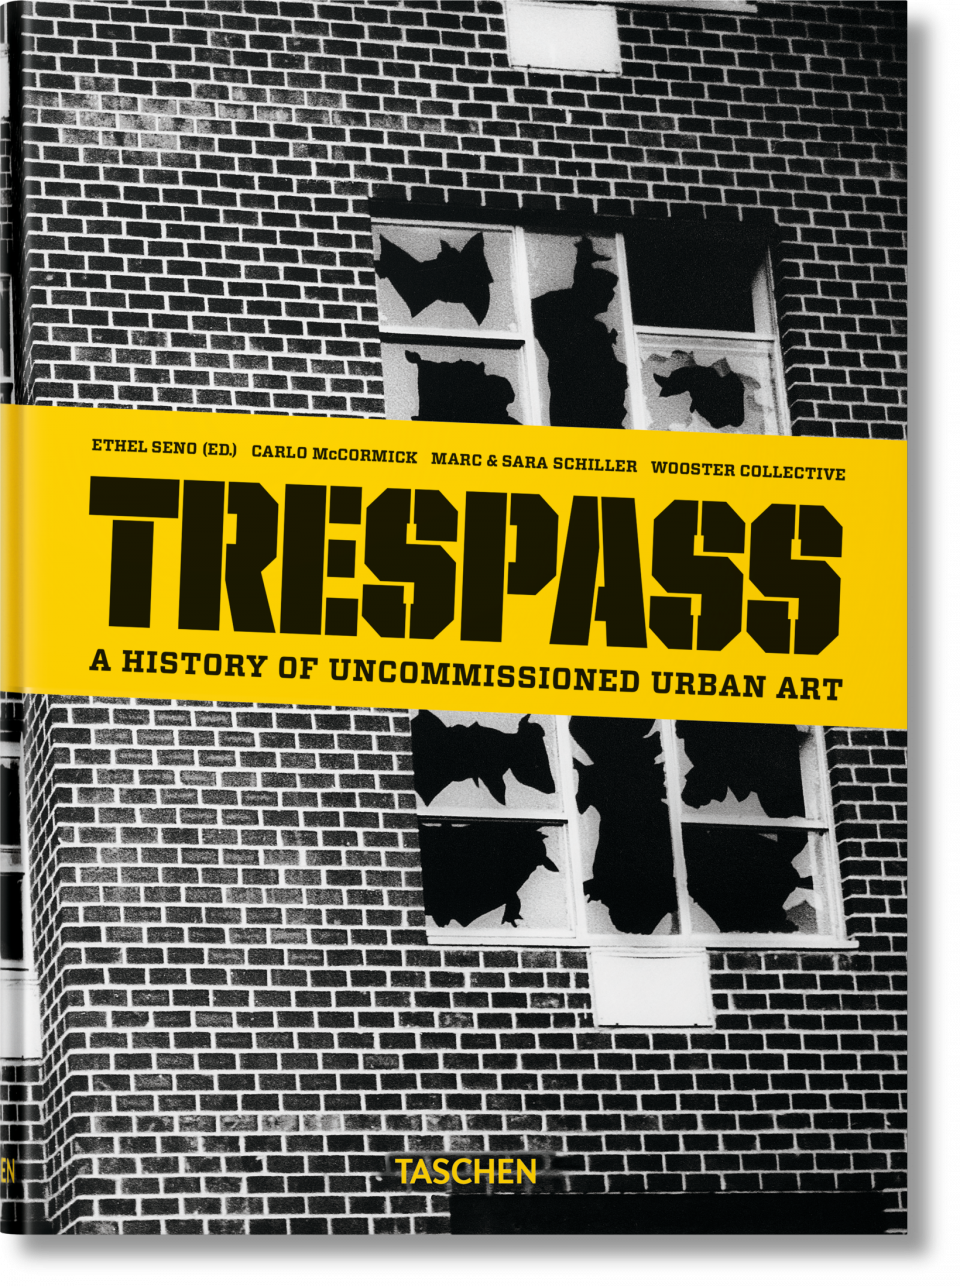 Trespass. A History of Uncommissioned Urban Art - TASCHEN ... | 960 x 1286 png 1904kB